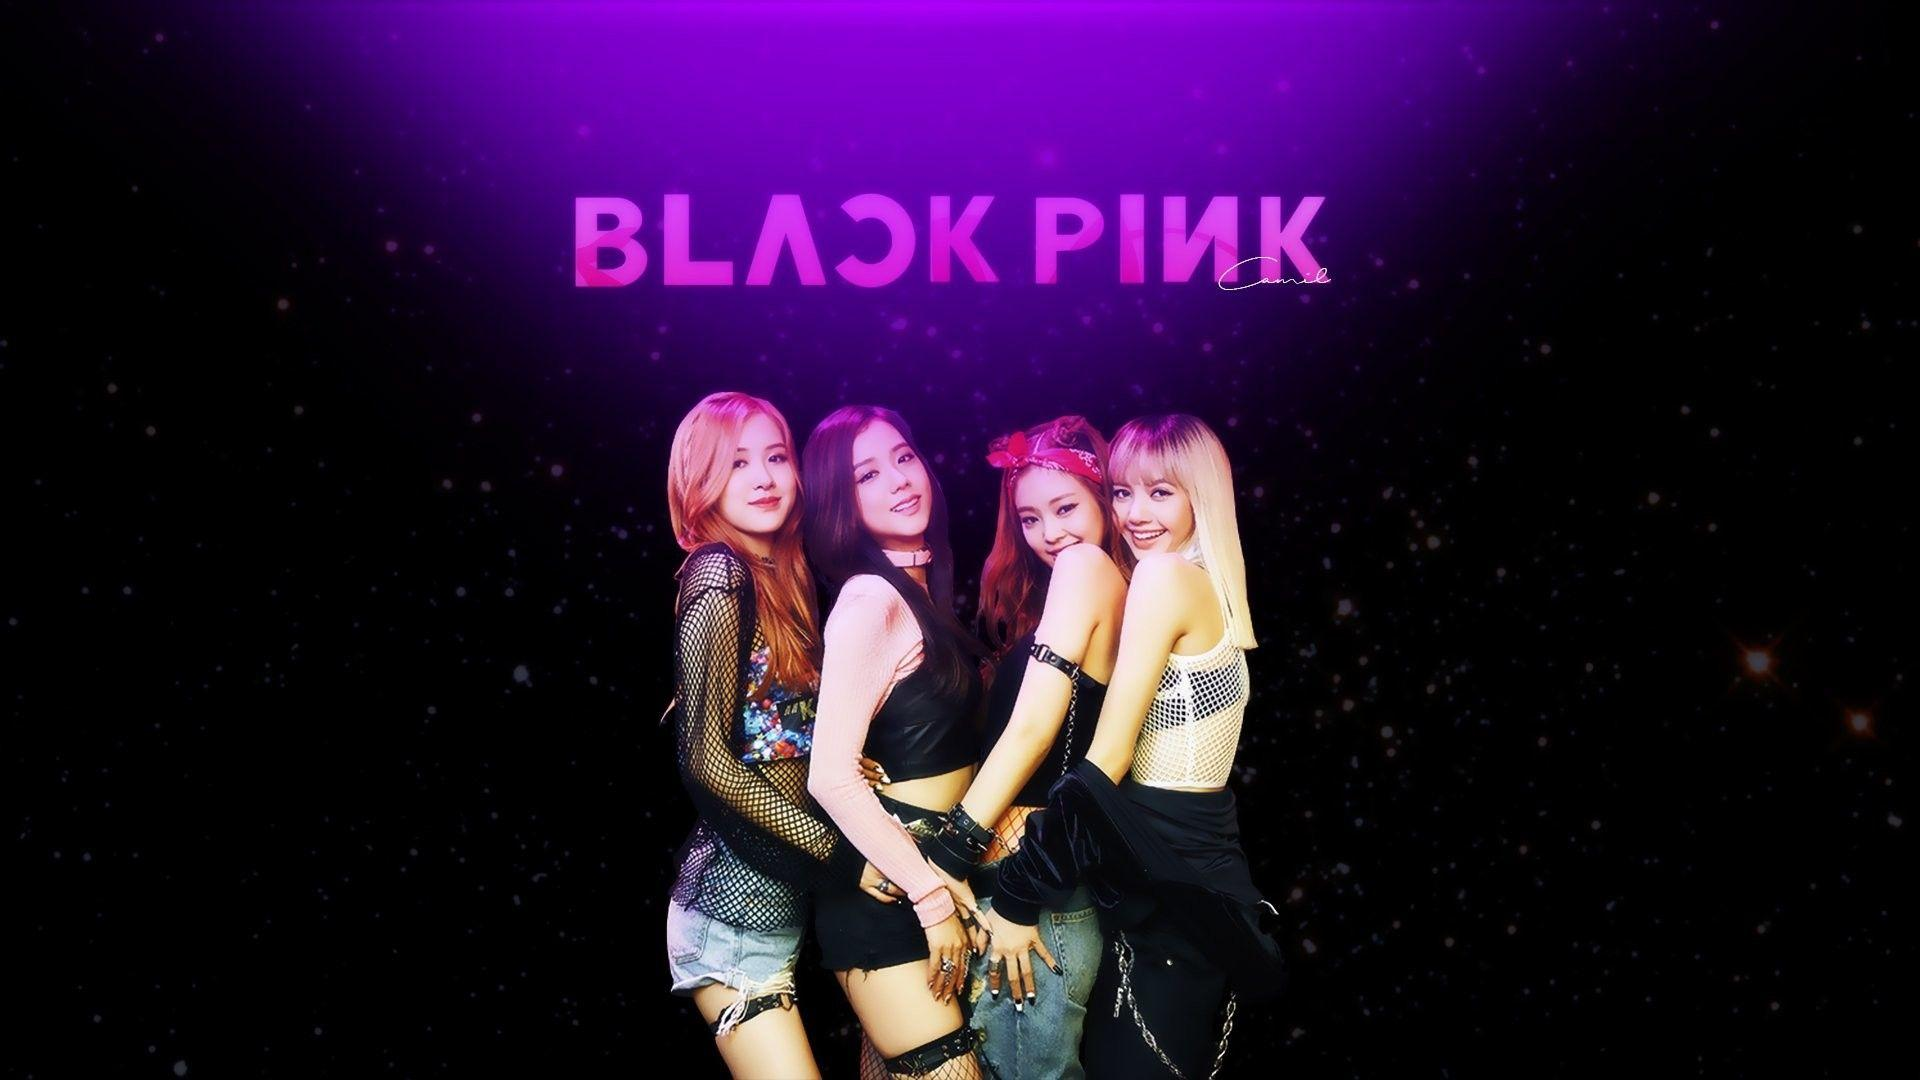 Blackpink Wallpapers (63+ images)